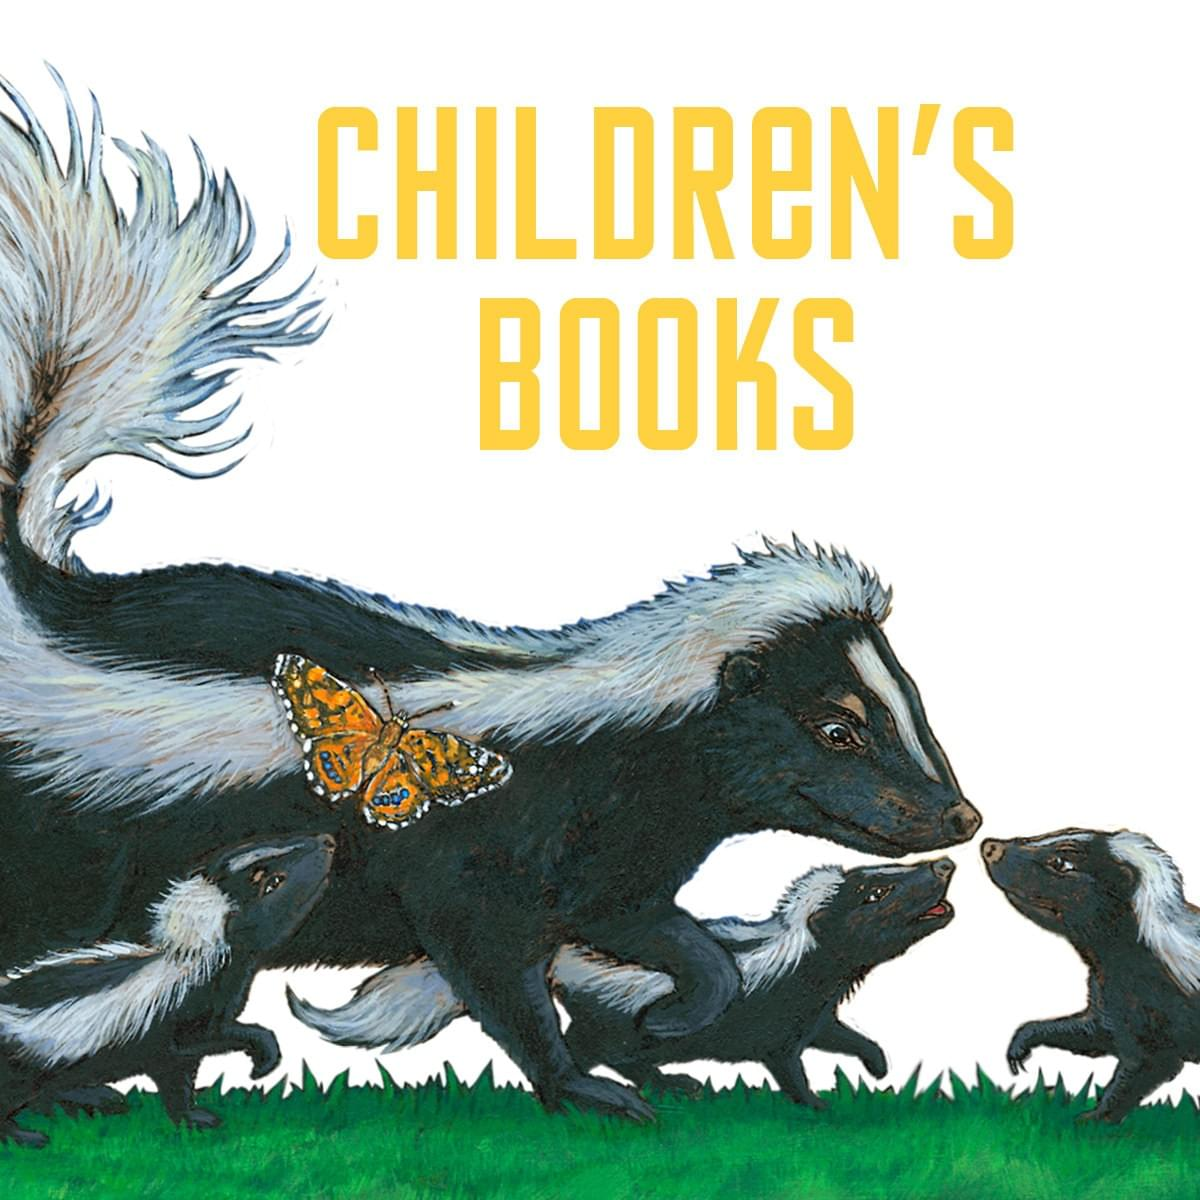 Children's books illustrated by Chuck Todd